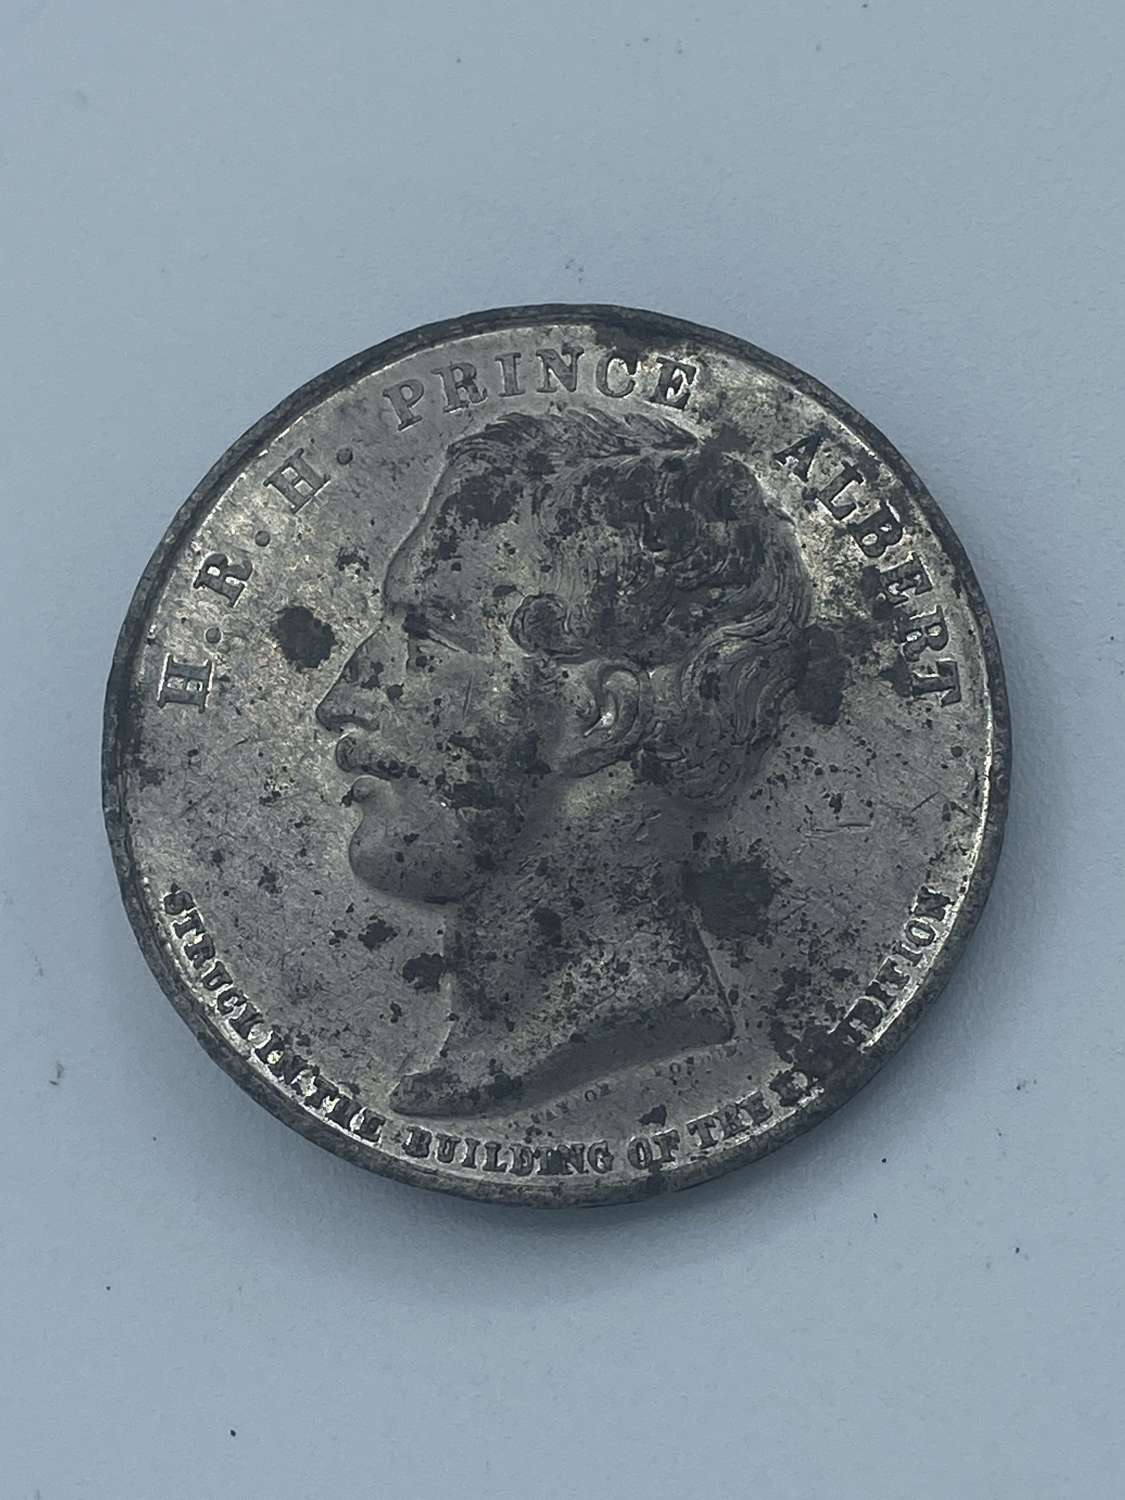 Great Exhibition Struck, Crystal Palace, 1851, Silvered WM Medal